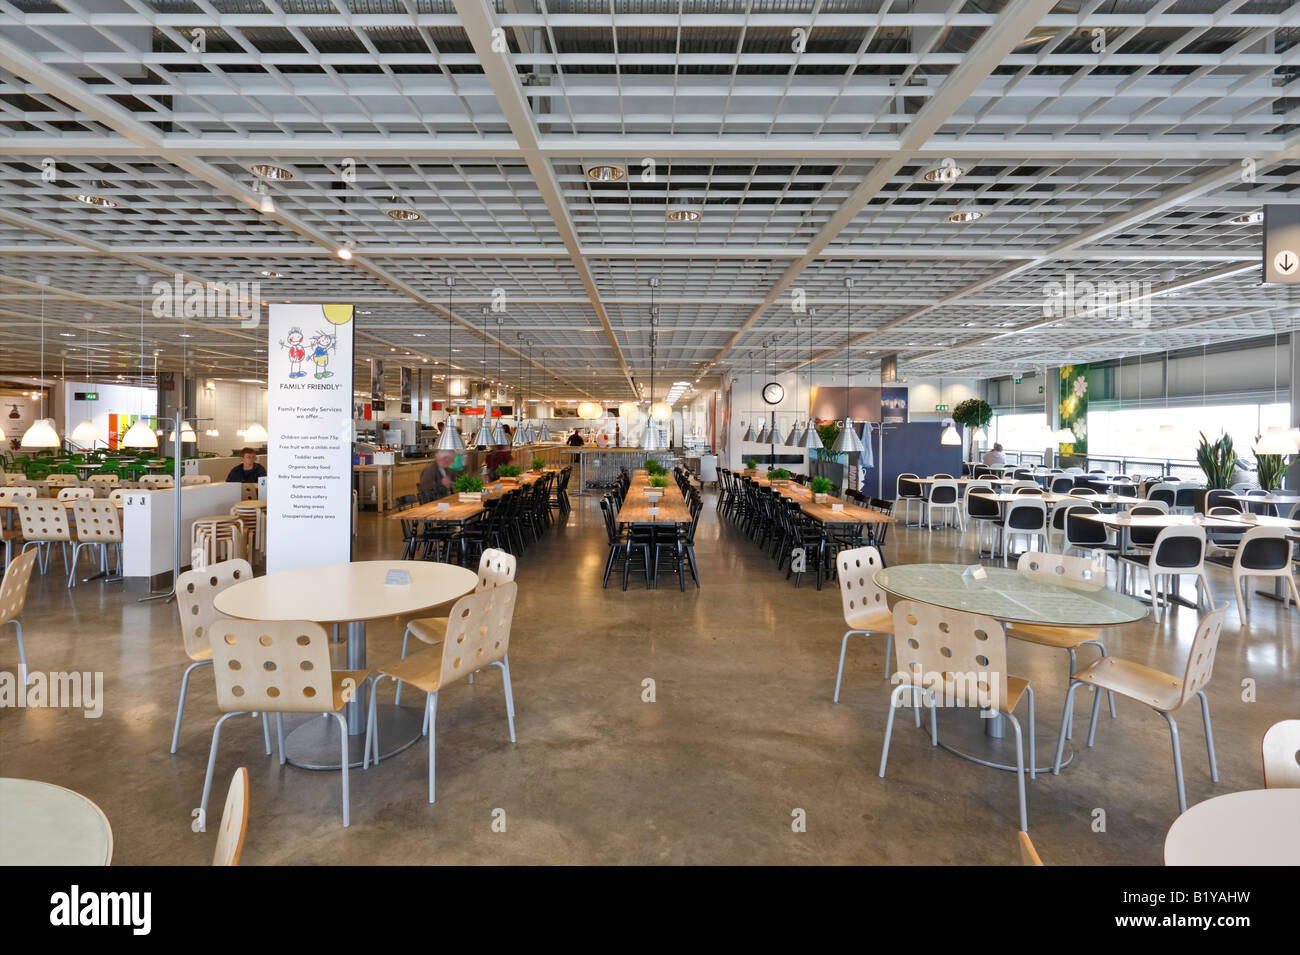 Restaurant at the ikea furniture store in coventry stock for Restaurant ikea miami